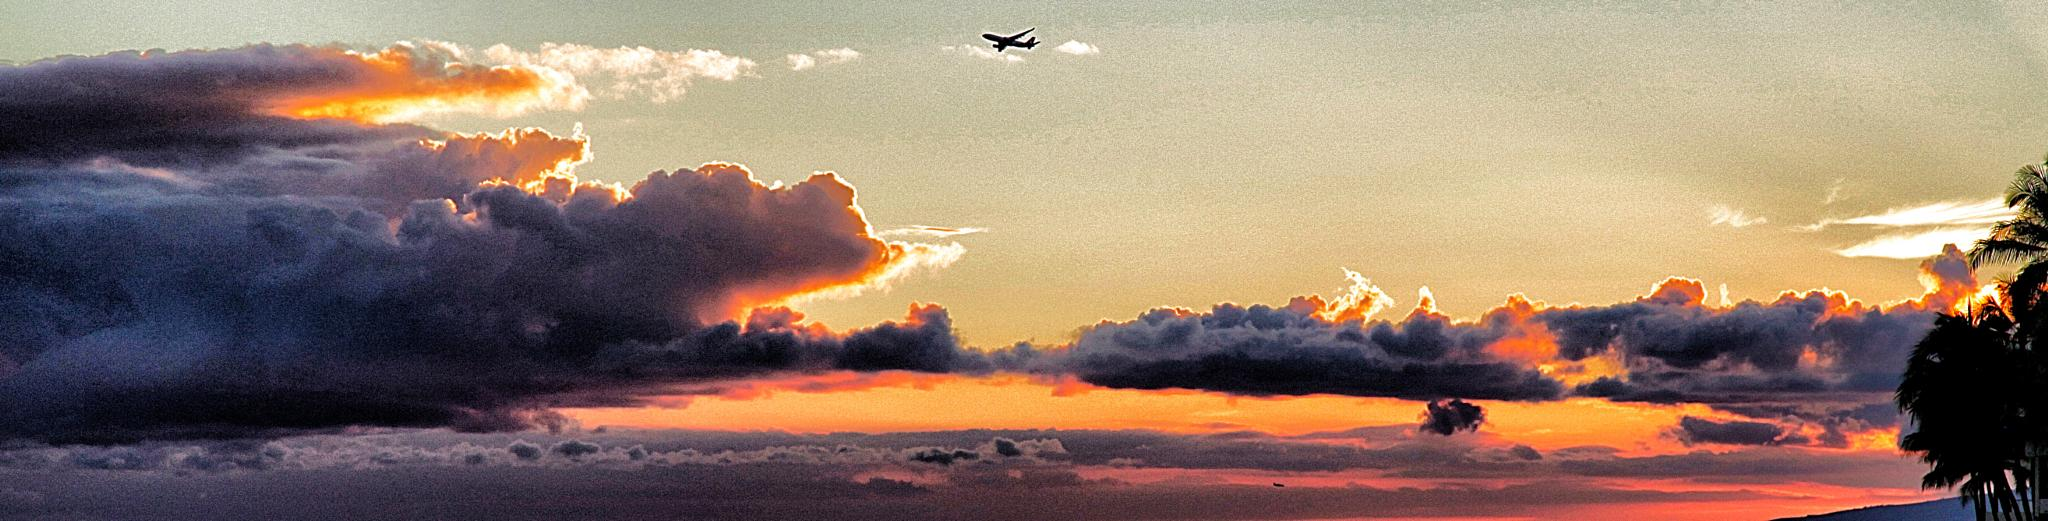 What a night to fly! by Michael Lyon